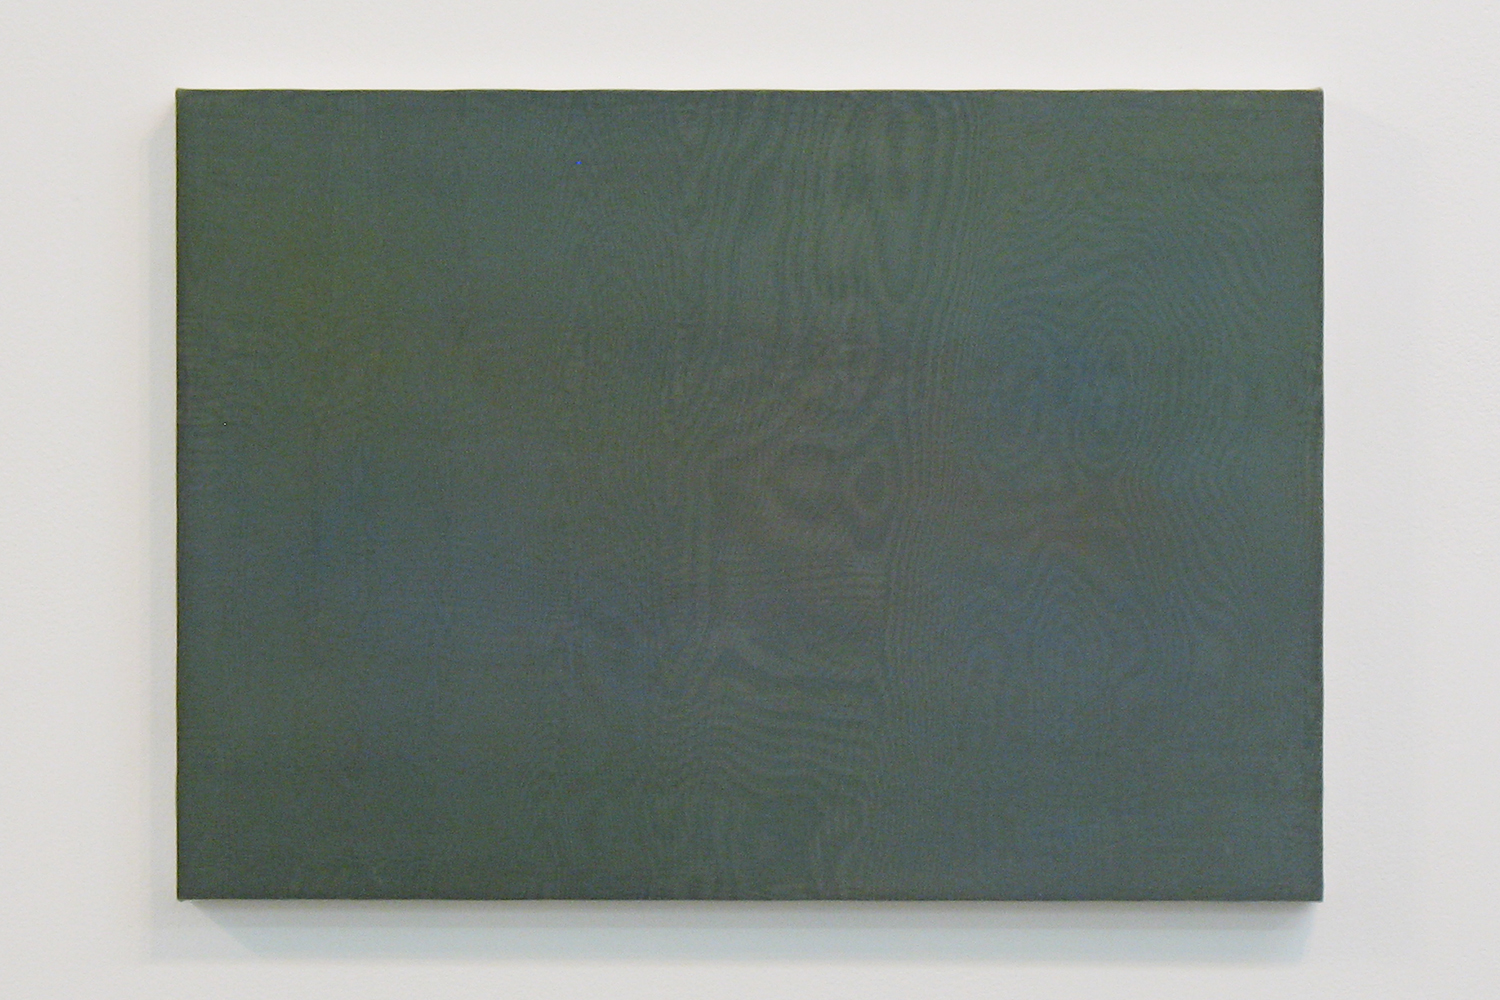 中空 0906 (hollowness 0906)|panel, stainless steel sheet, glass organdy, acrylic|363  x 515 mm|2009